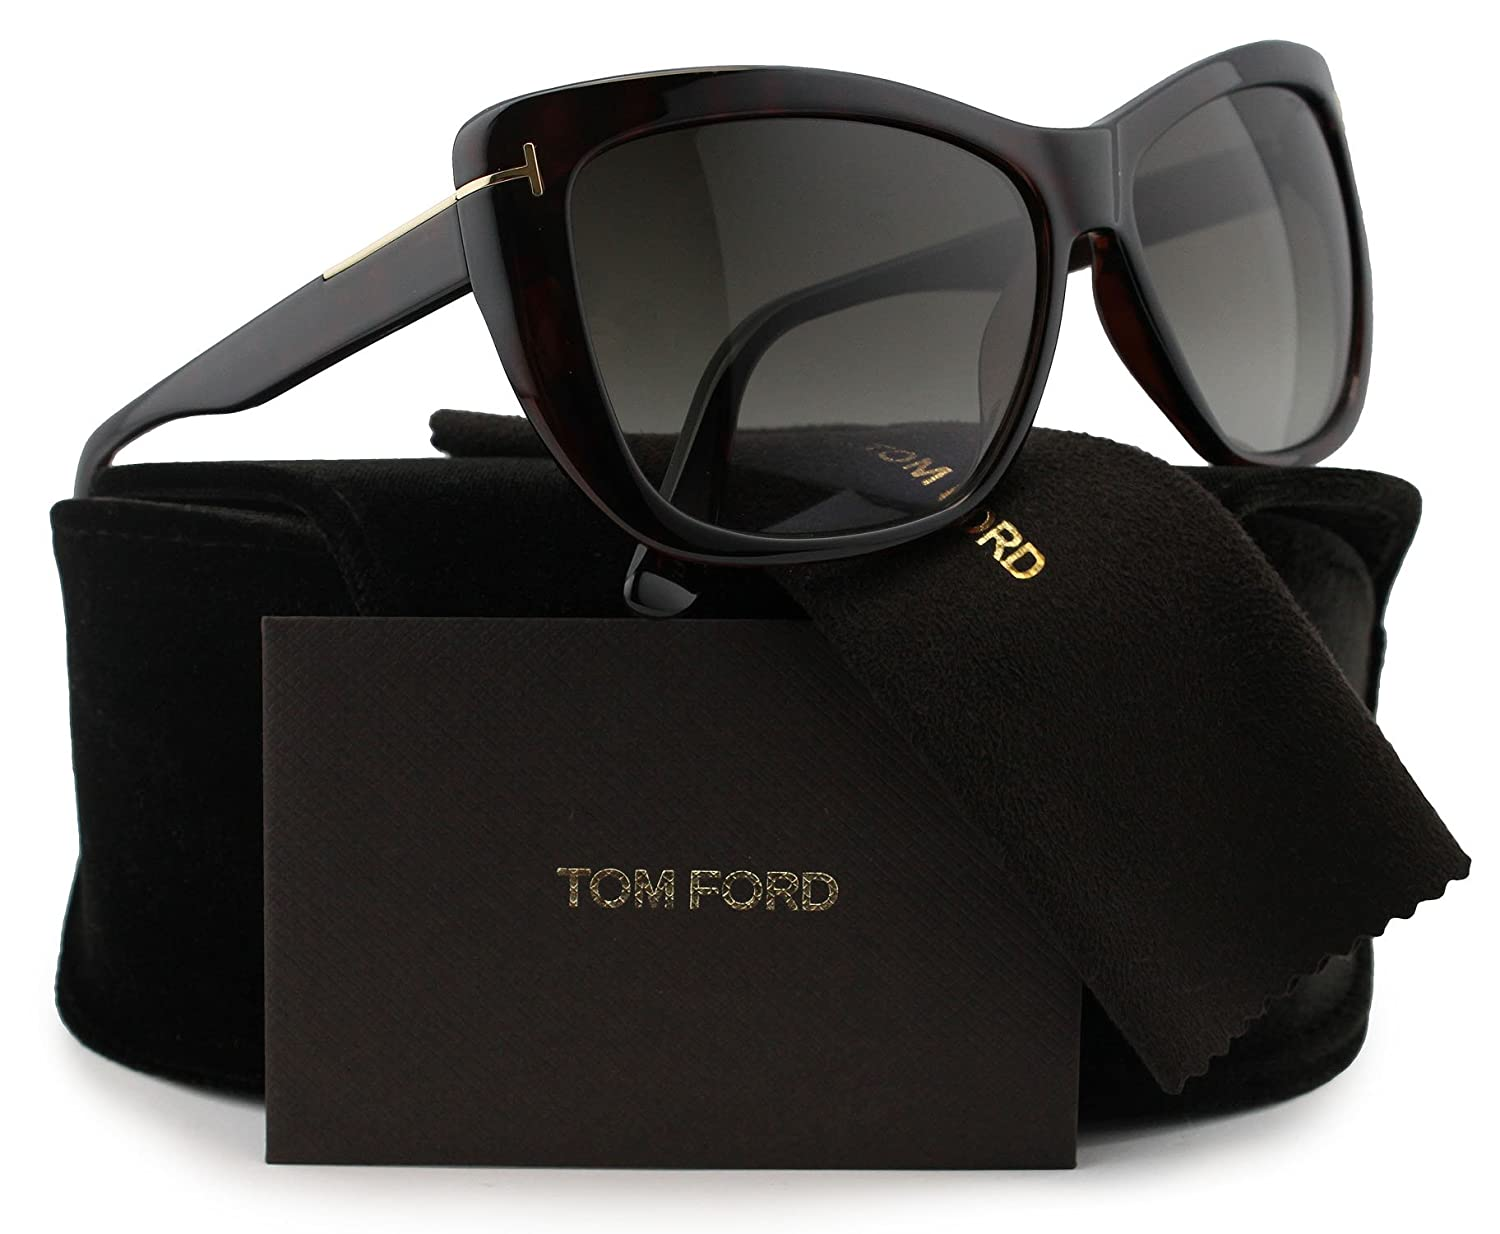 b20b058ce28 Amazon.com  TOM FORD FT0434 Lindsay Sunglasses Dark Havana w Brown Gradient  (52K) TF 434 52K 58mm Authentic  Clothing